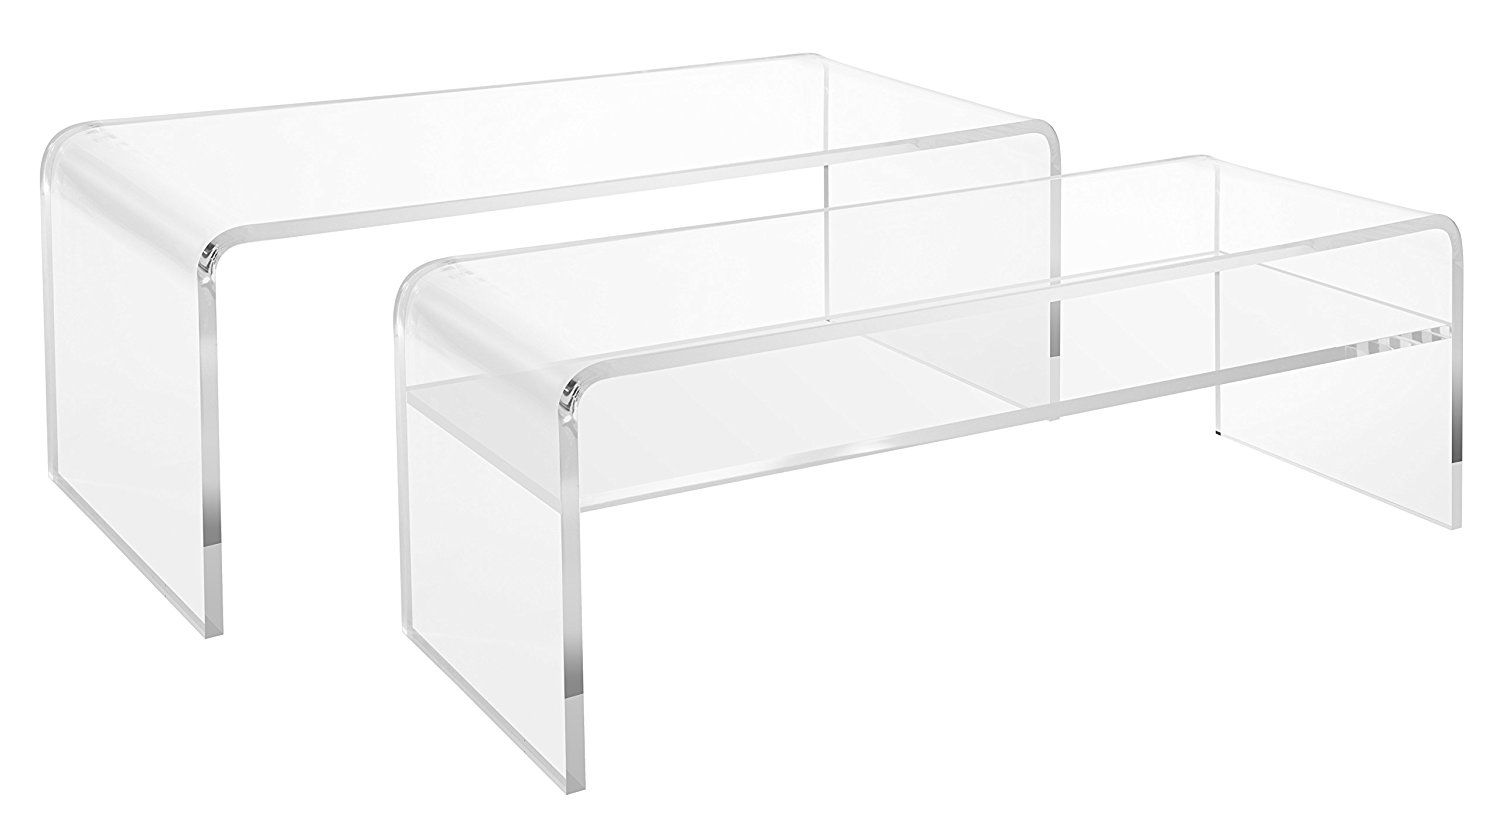 Clear Acrylic Coffee Tables With Shelf And Without Shelf 44 L